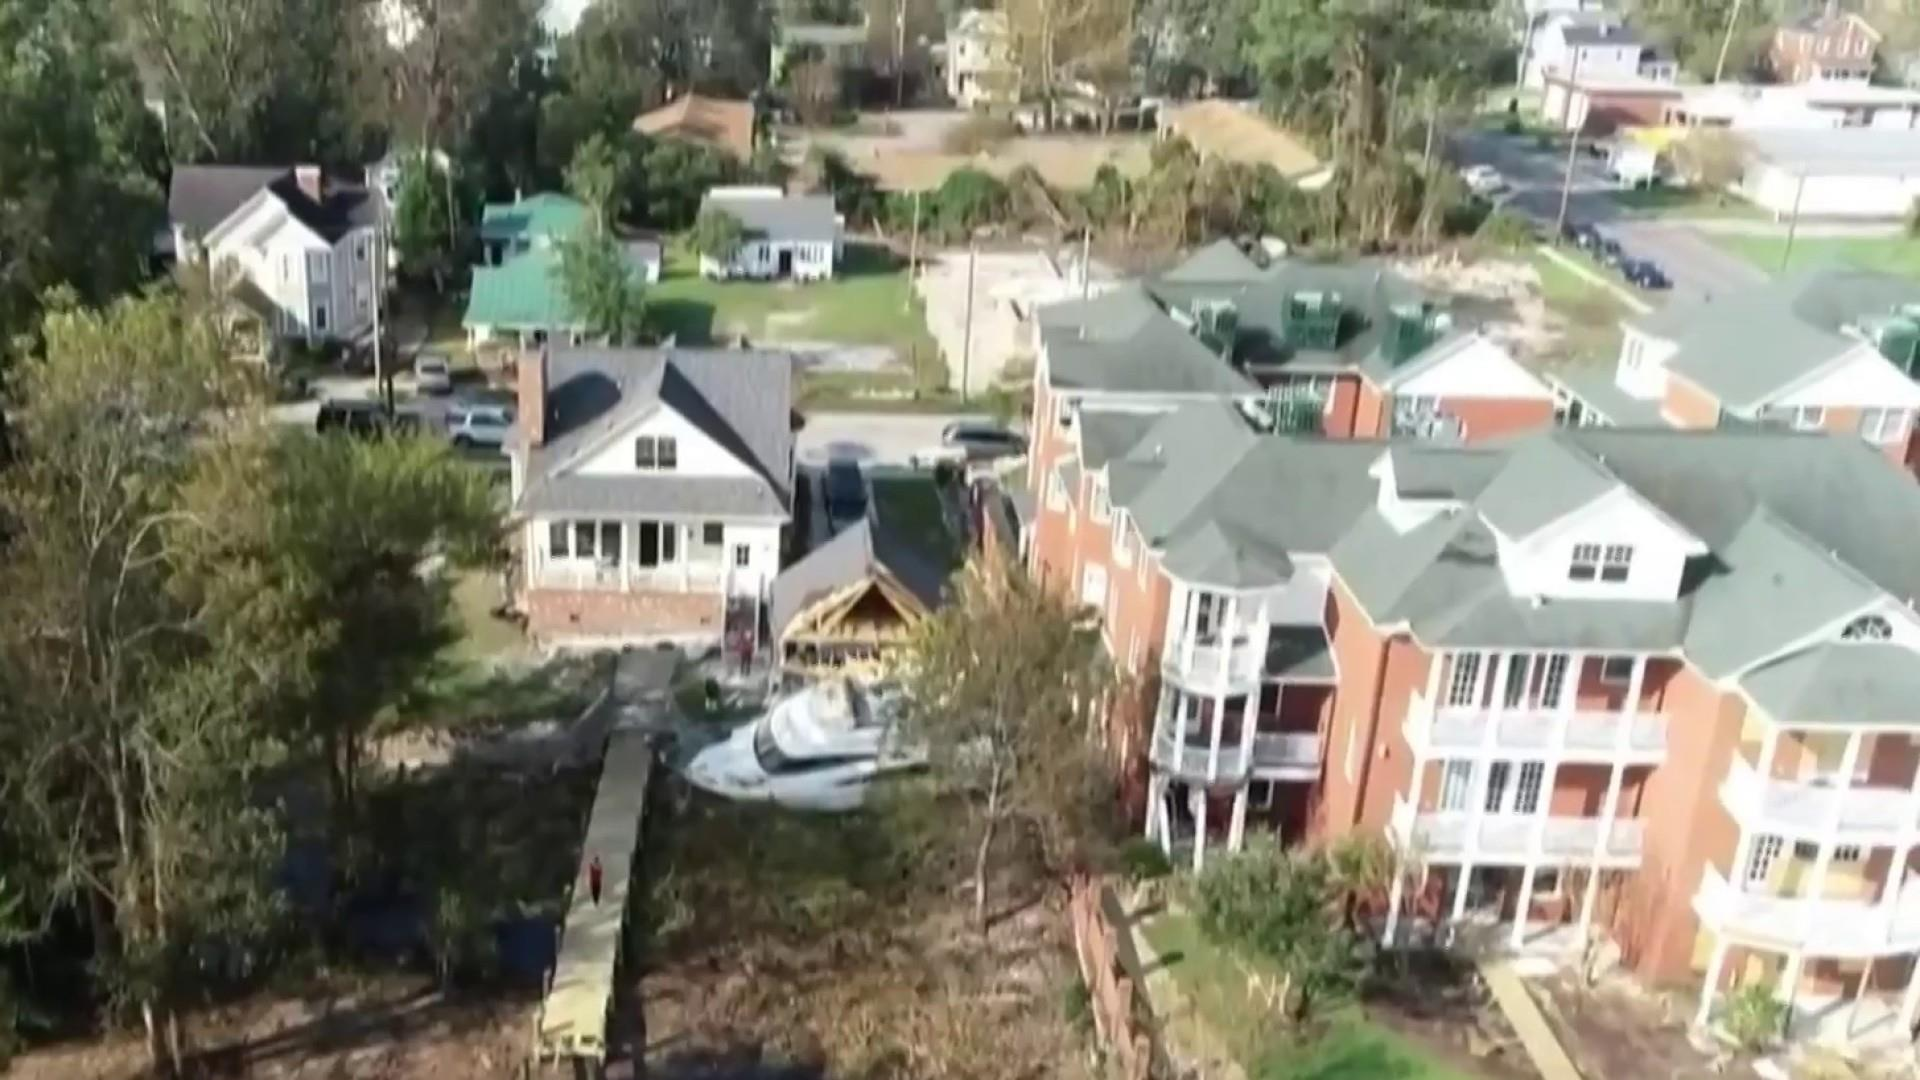 The damage after Hurricane Florence